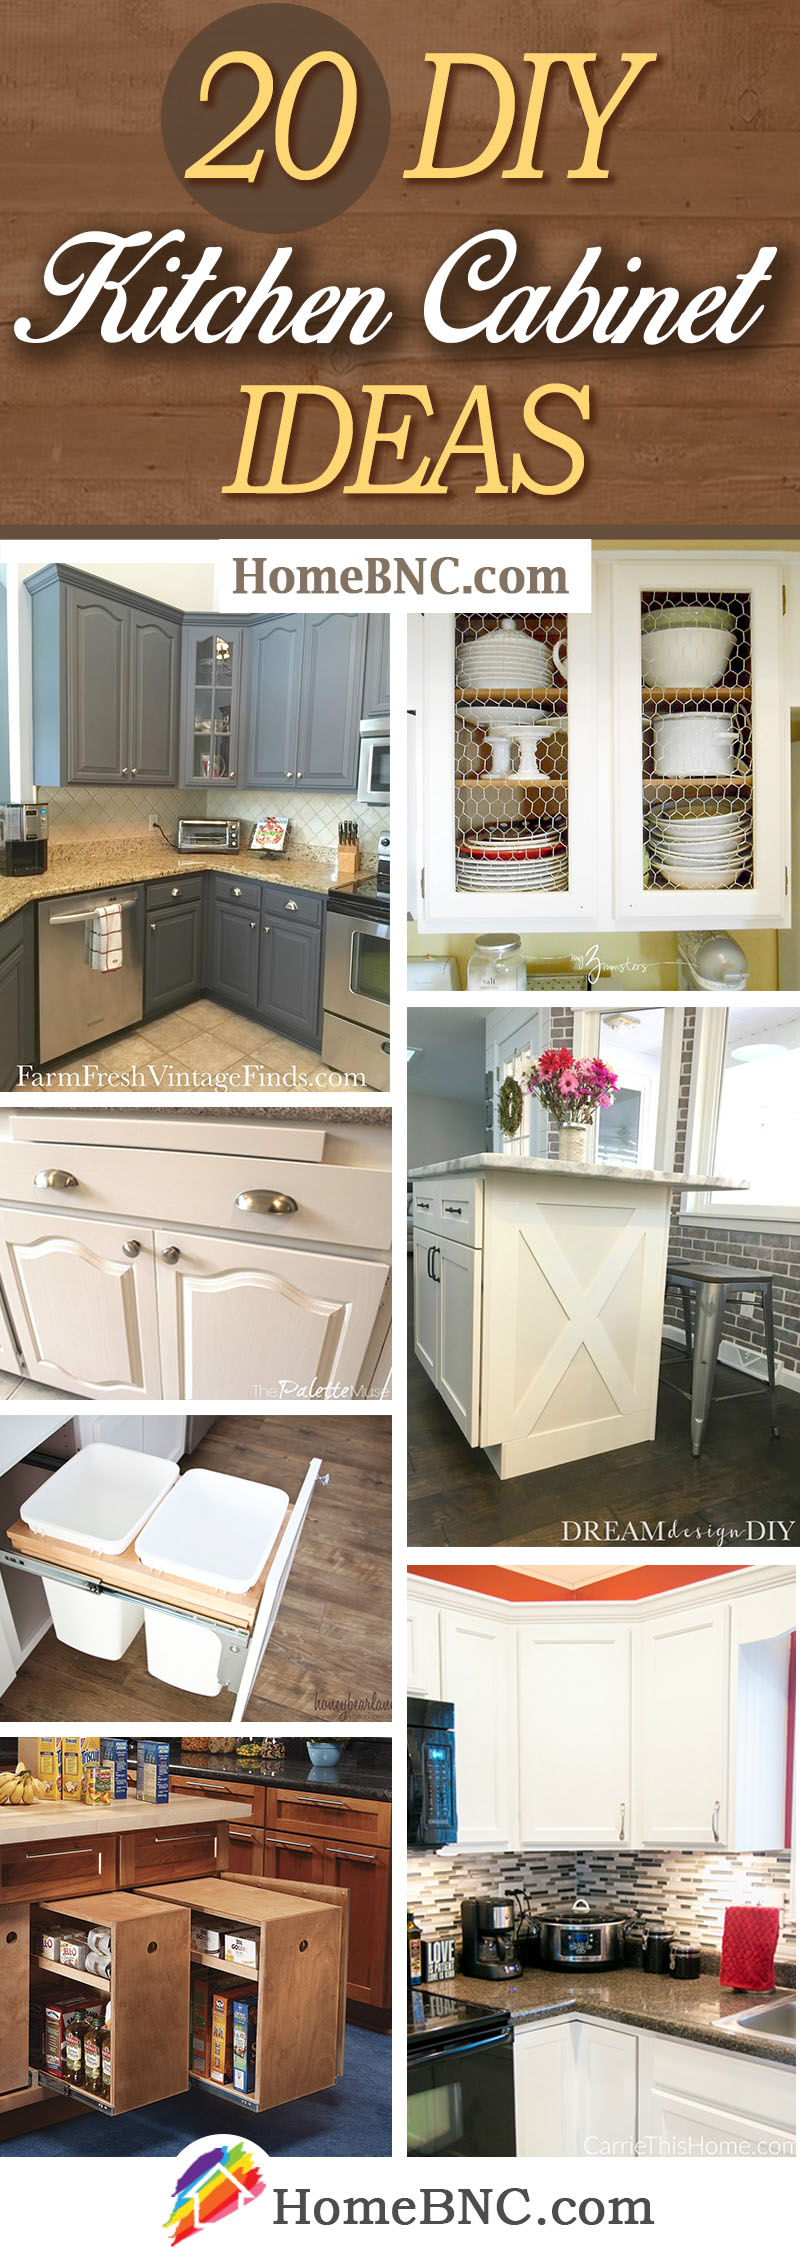 DIY Kitchen Cabinet Ideas